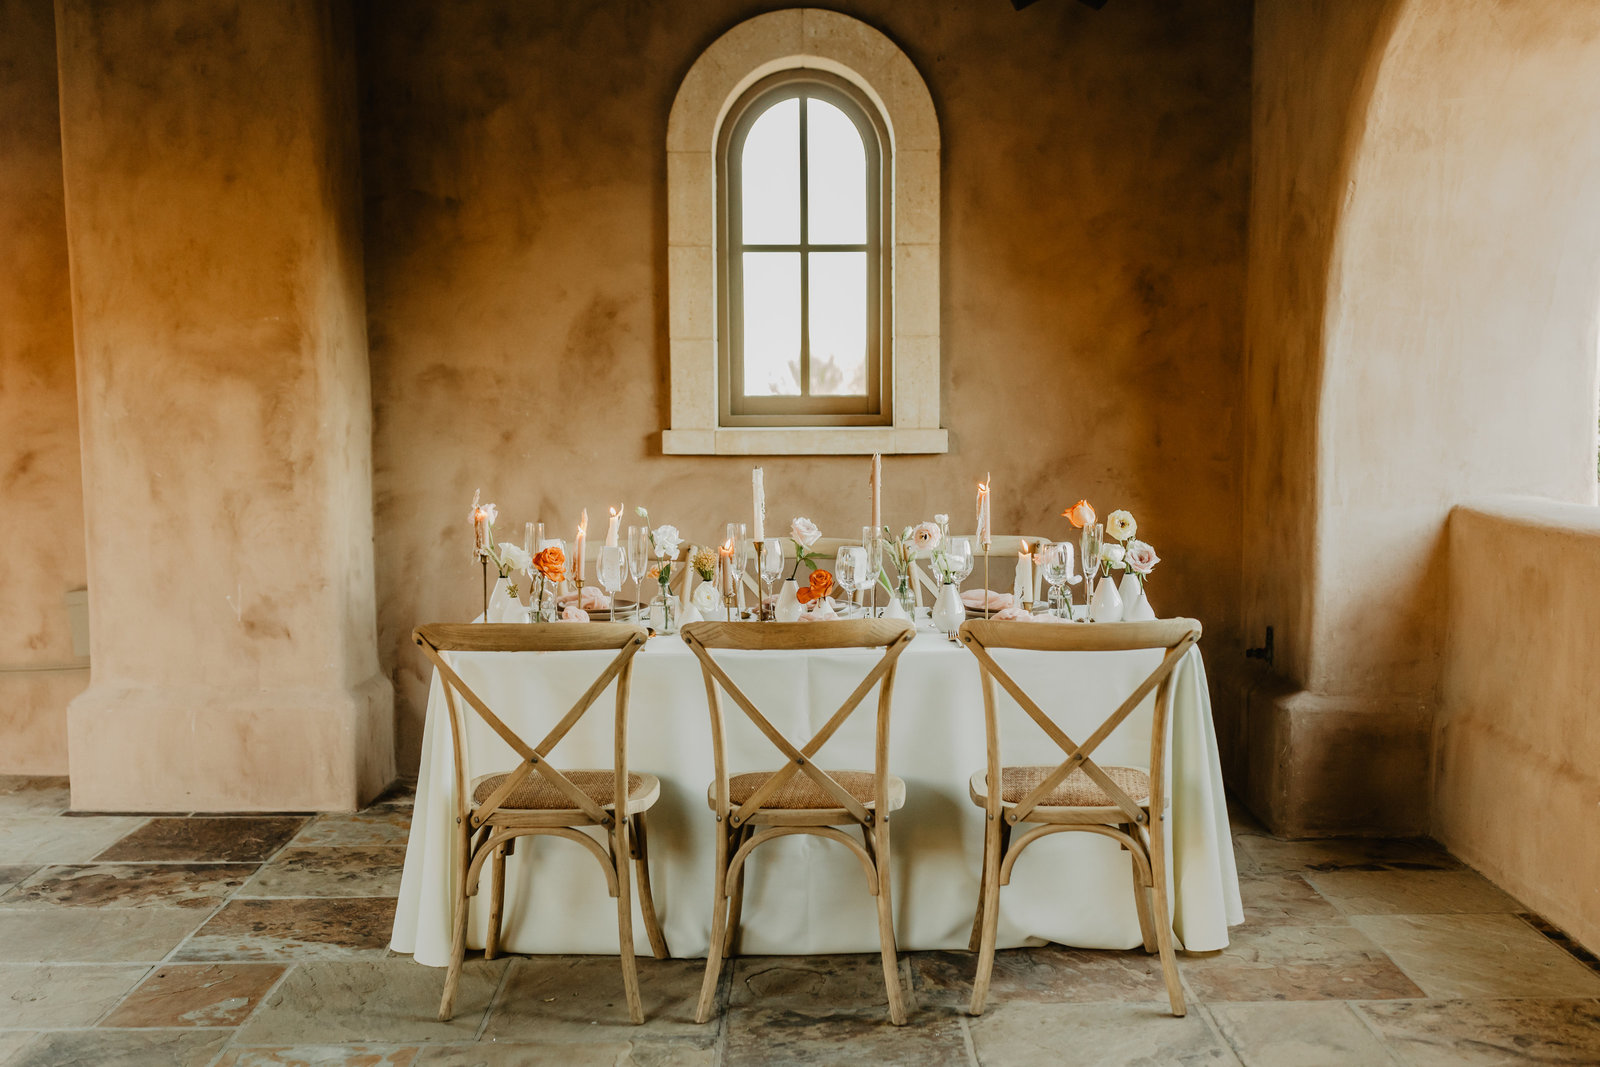 Wedding table design idea with modern touches in desert architecture.